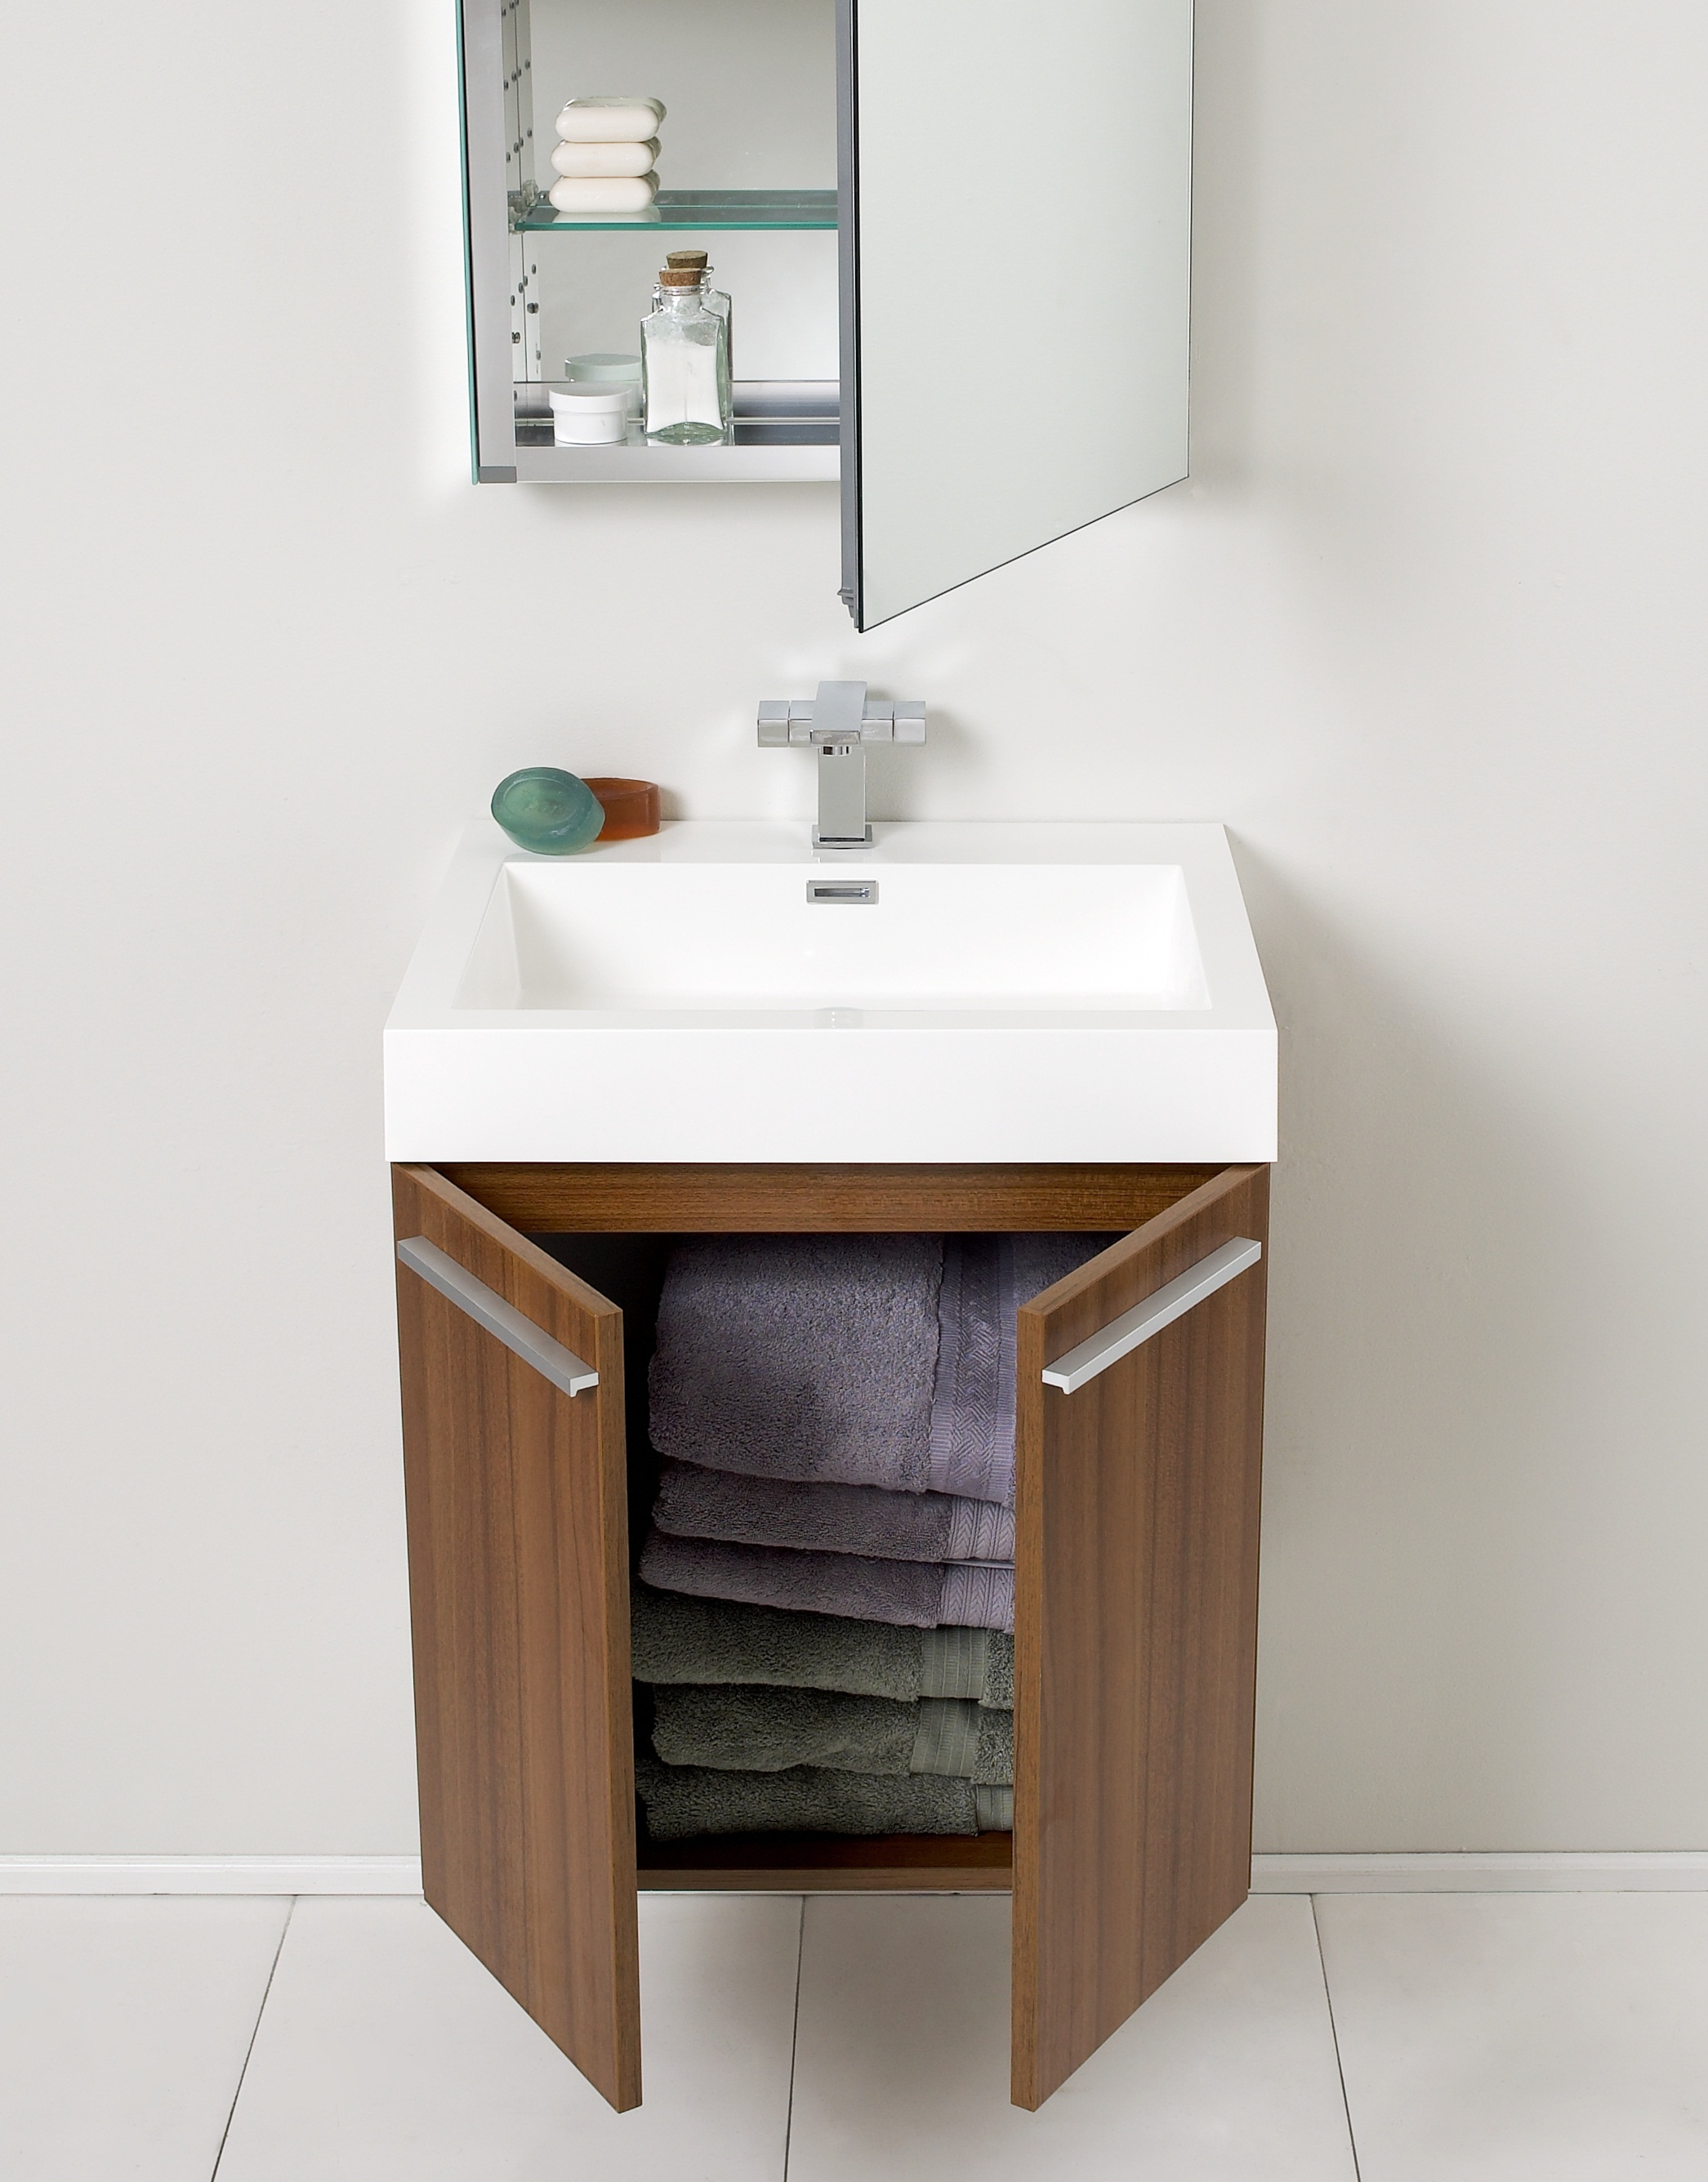 Small bathroom vanities for layouts lacking space eva for Bathroom sink toilet cabinets